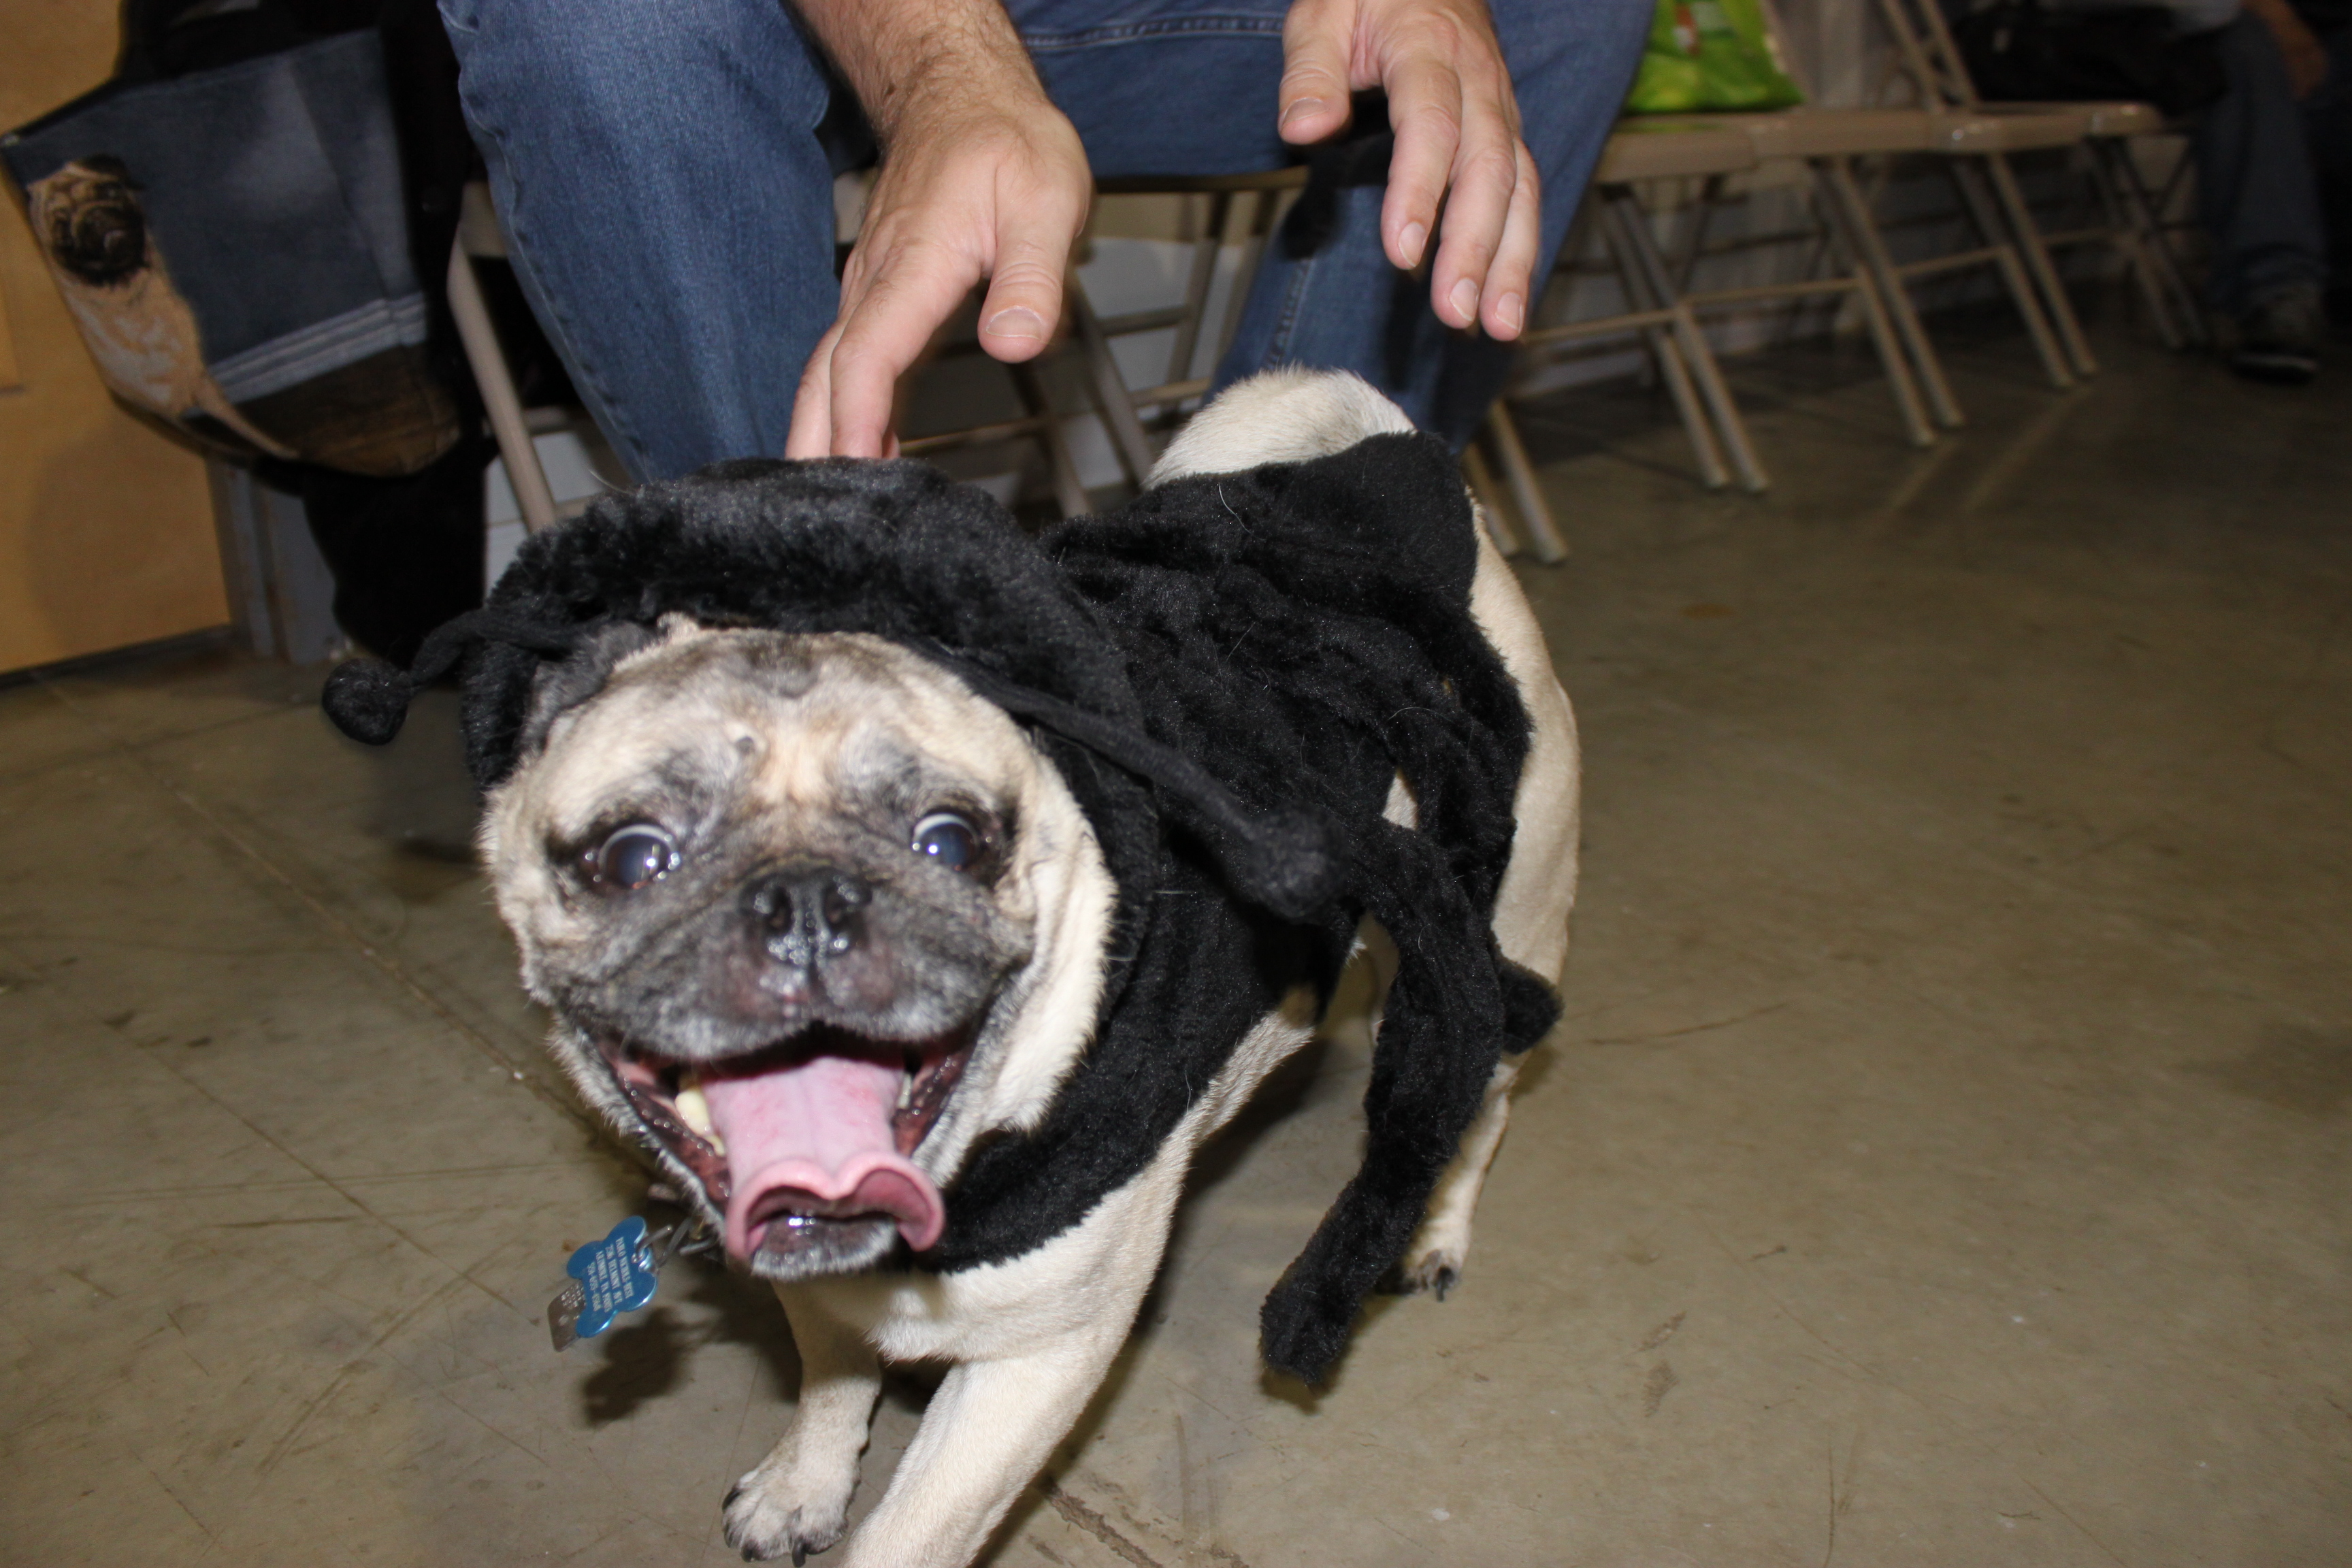 Supple Pugs Confessions Pablo Costumes Images A Pugophile Pugs His Spider Mohawk Pug Halloween Costumes Costumes Pugs bark post Pugs In Costumes